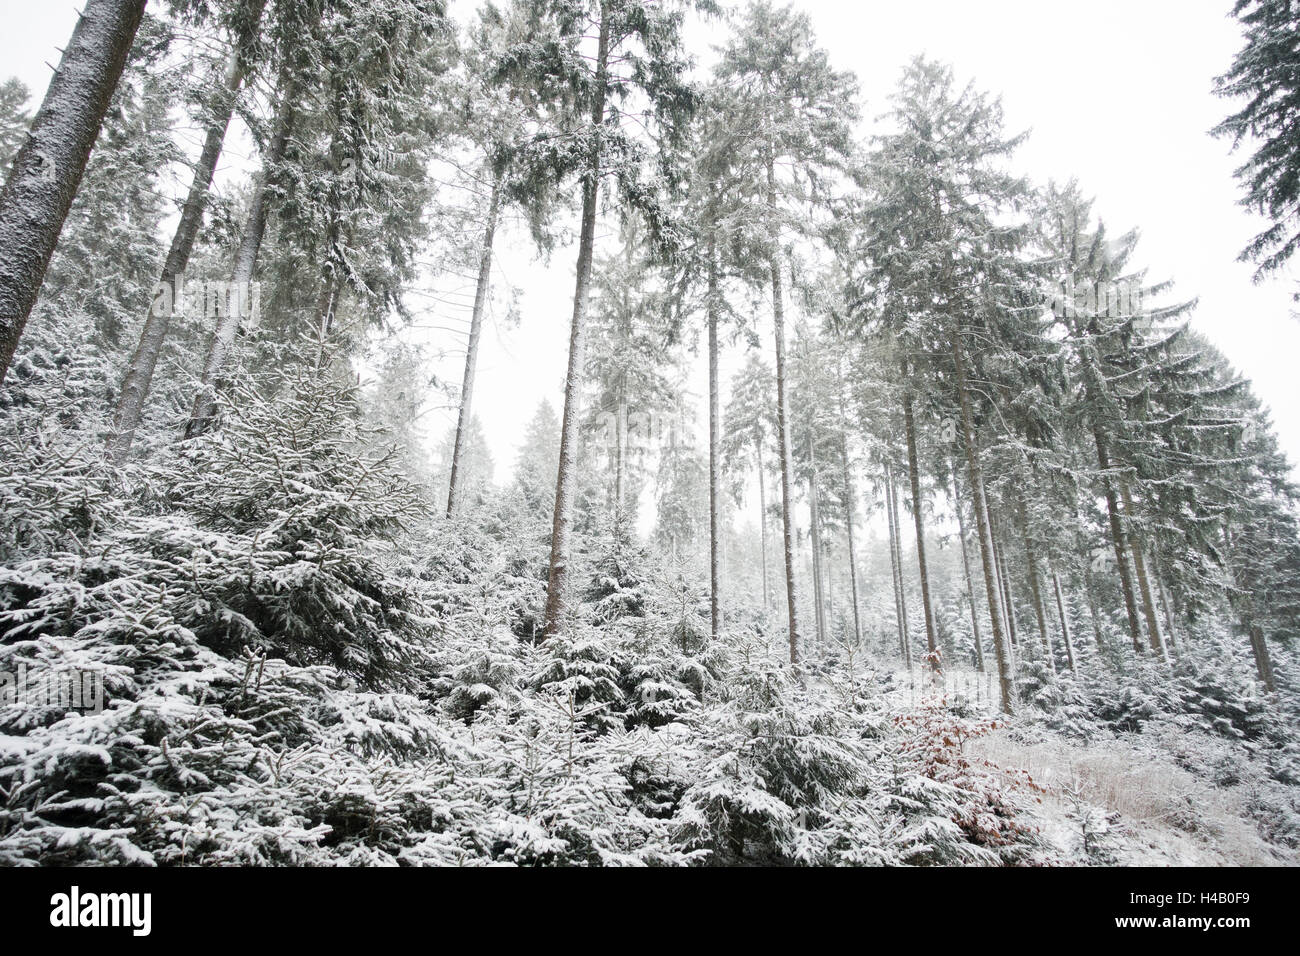 Winter forest with spruces and snow - Stock Image